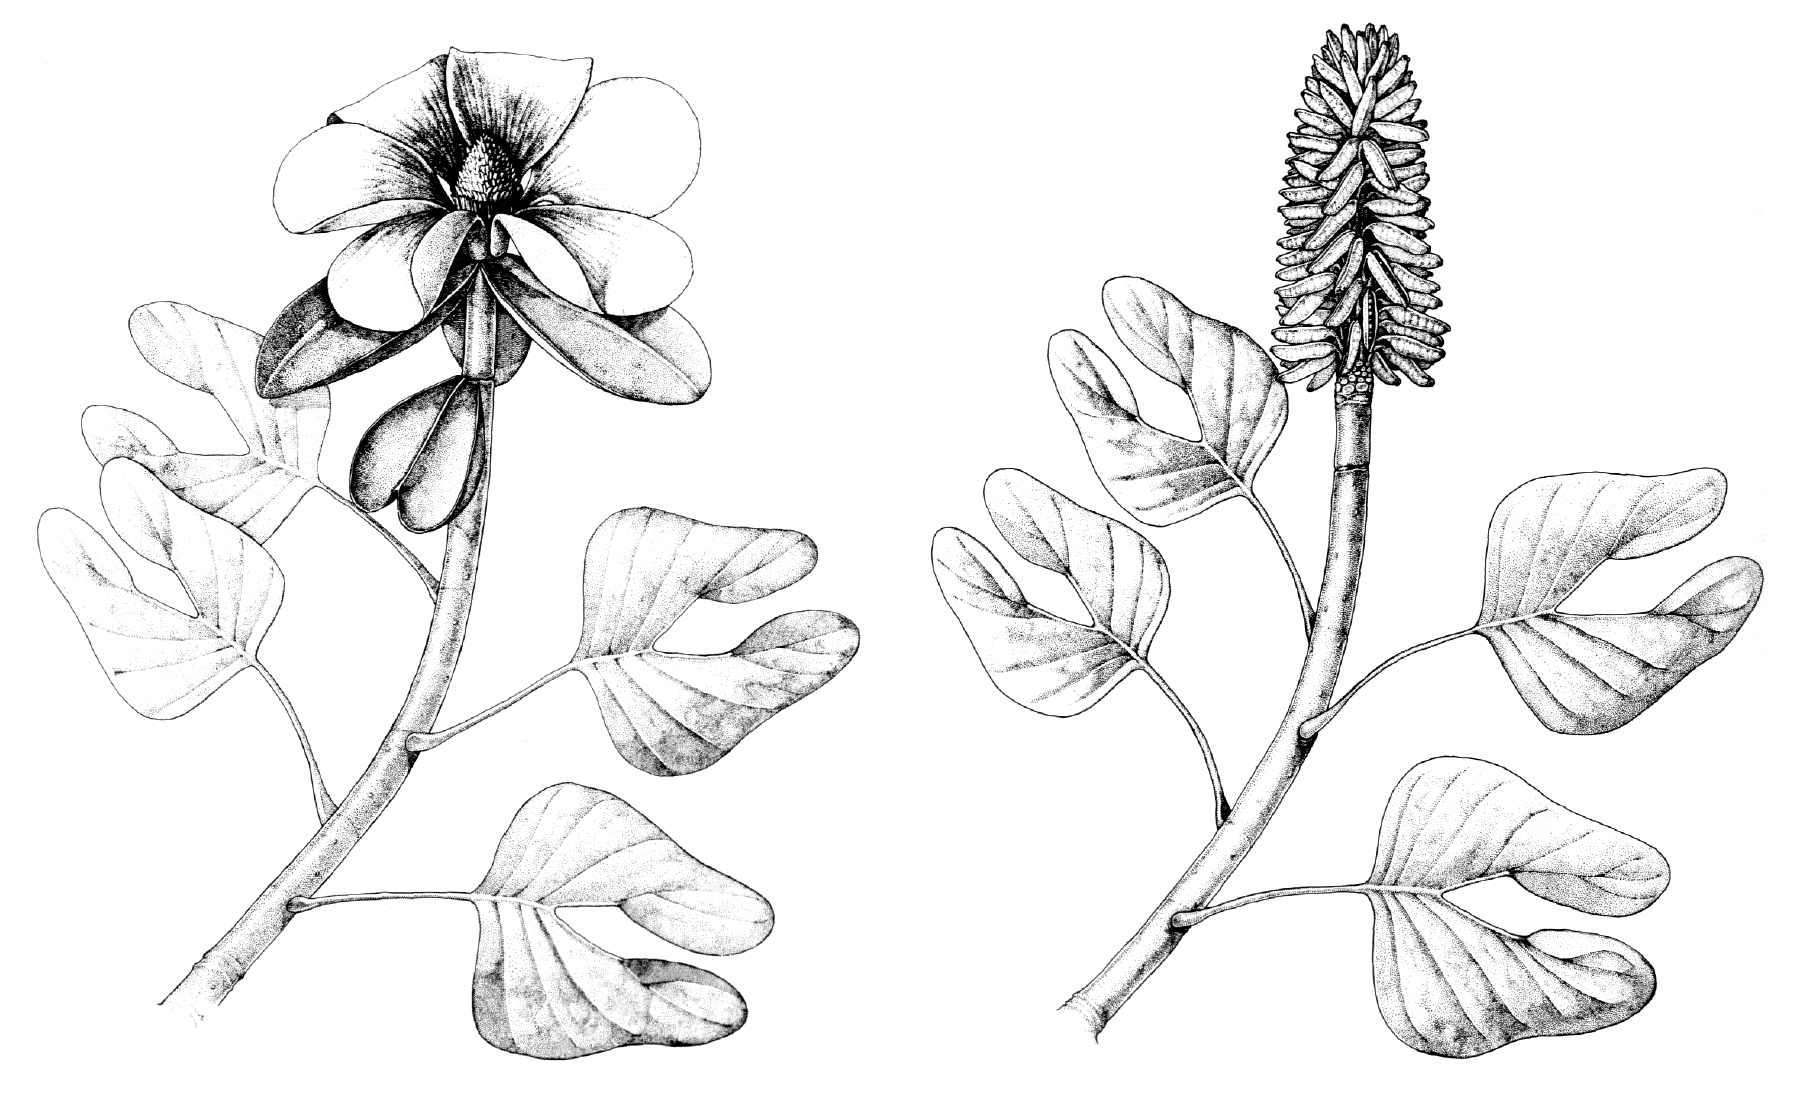 Drawings showing reconstructions of Archaeanthus, an extinct Magnolia-like plant, in flower and in fruit.